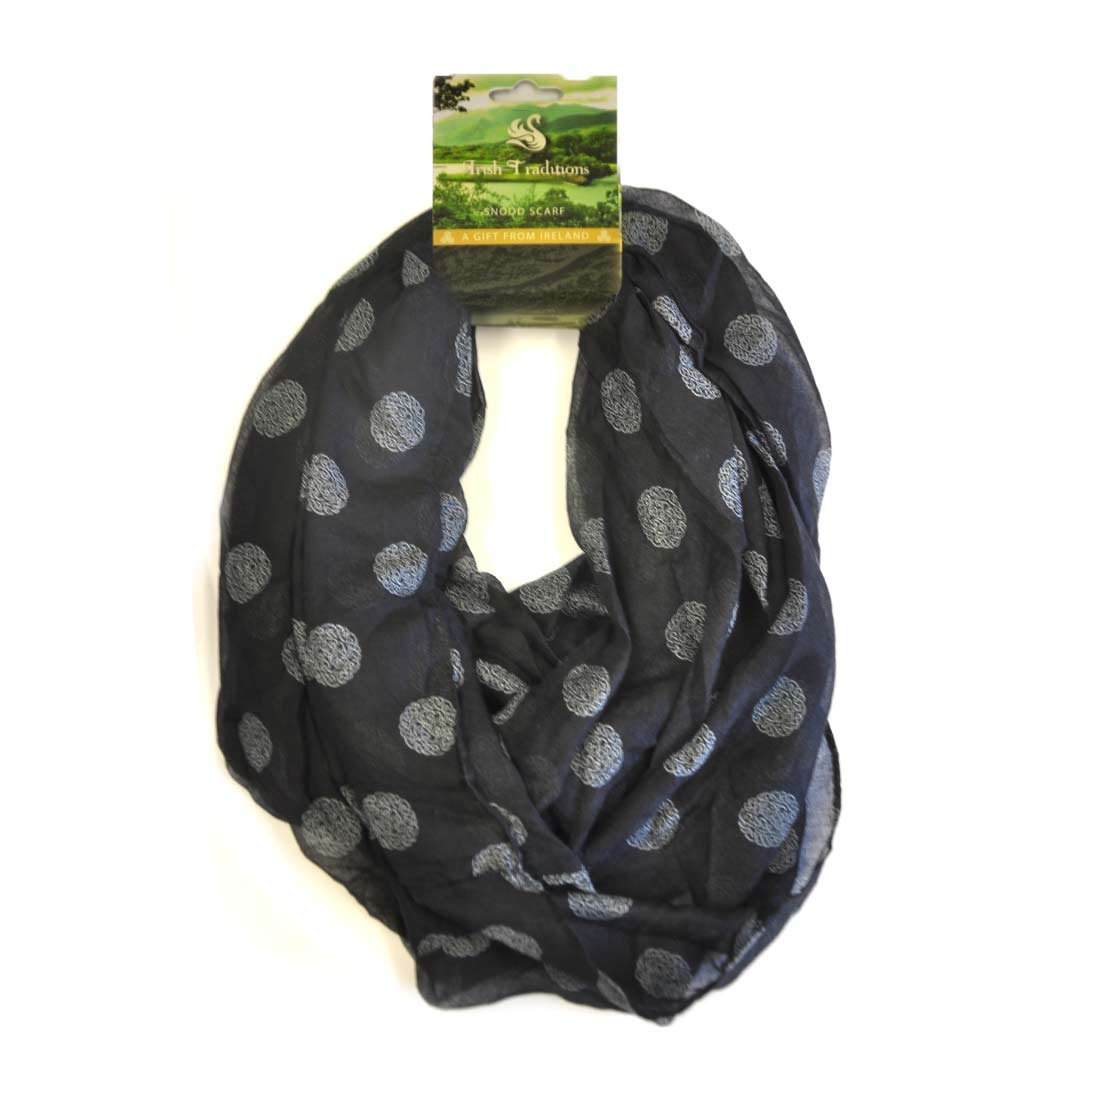 Carrolls Irish Gifts Exclusive Black Celtic Snood Scarf With White Celtic Knots Design